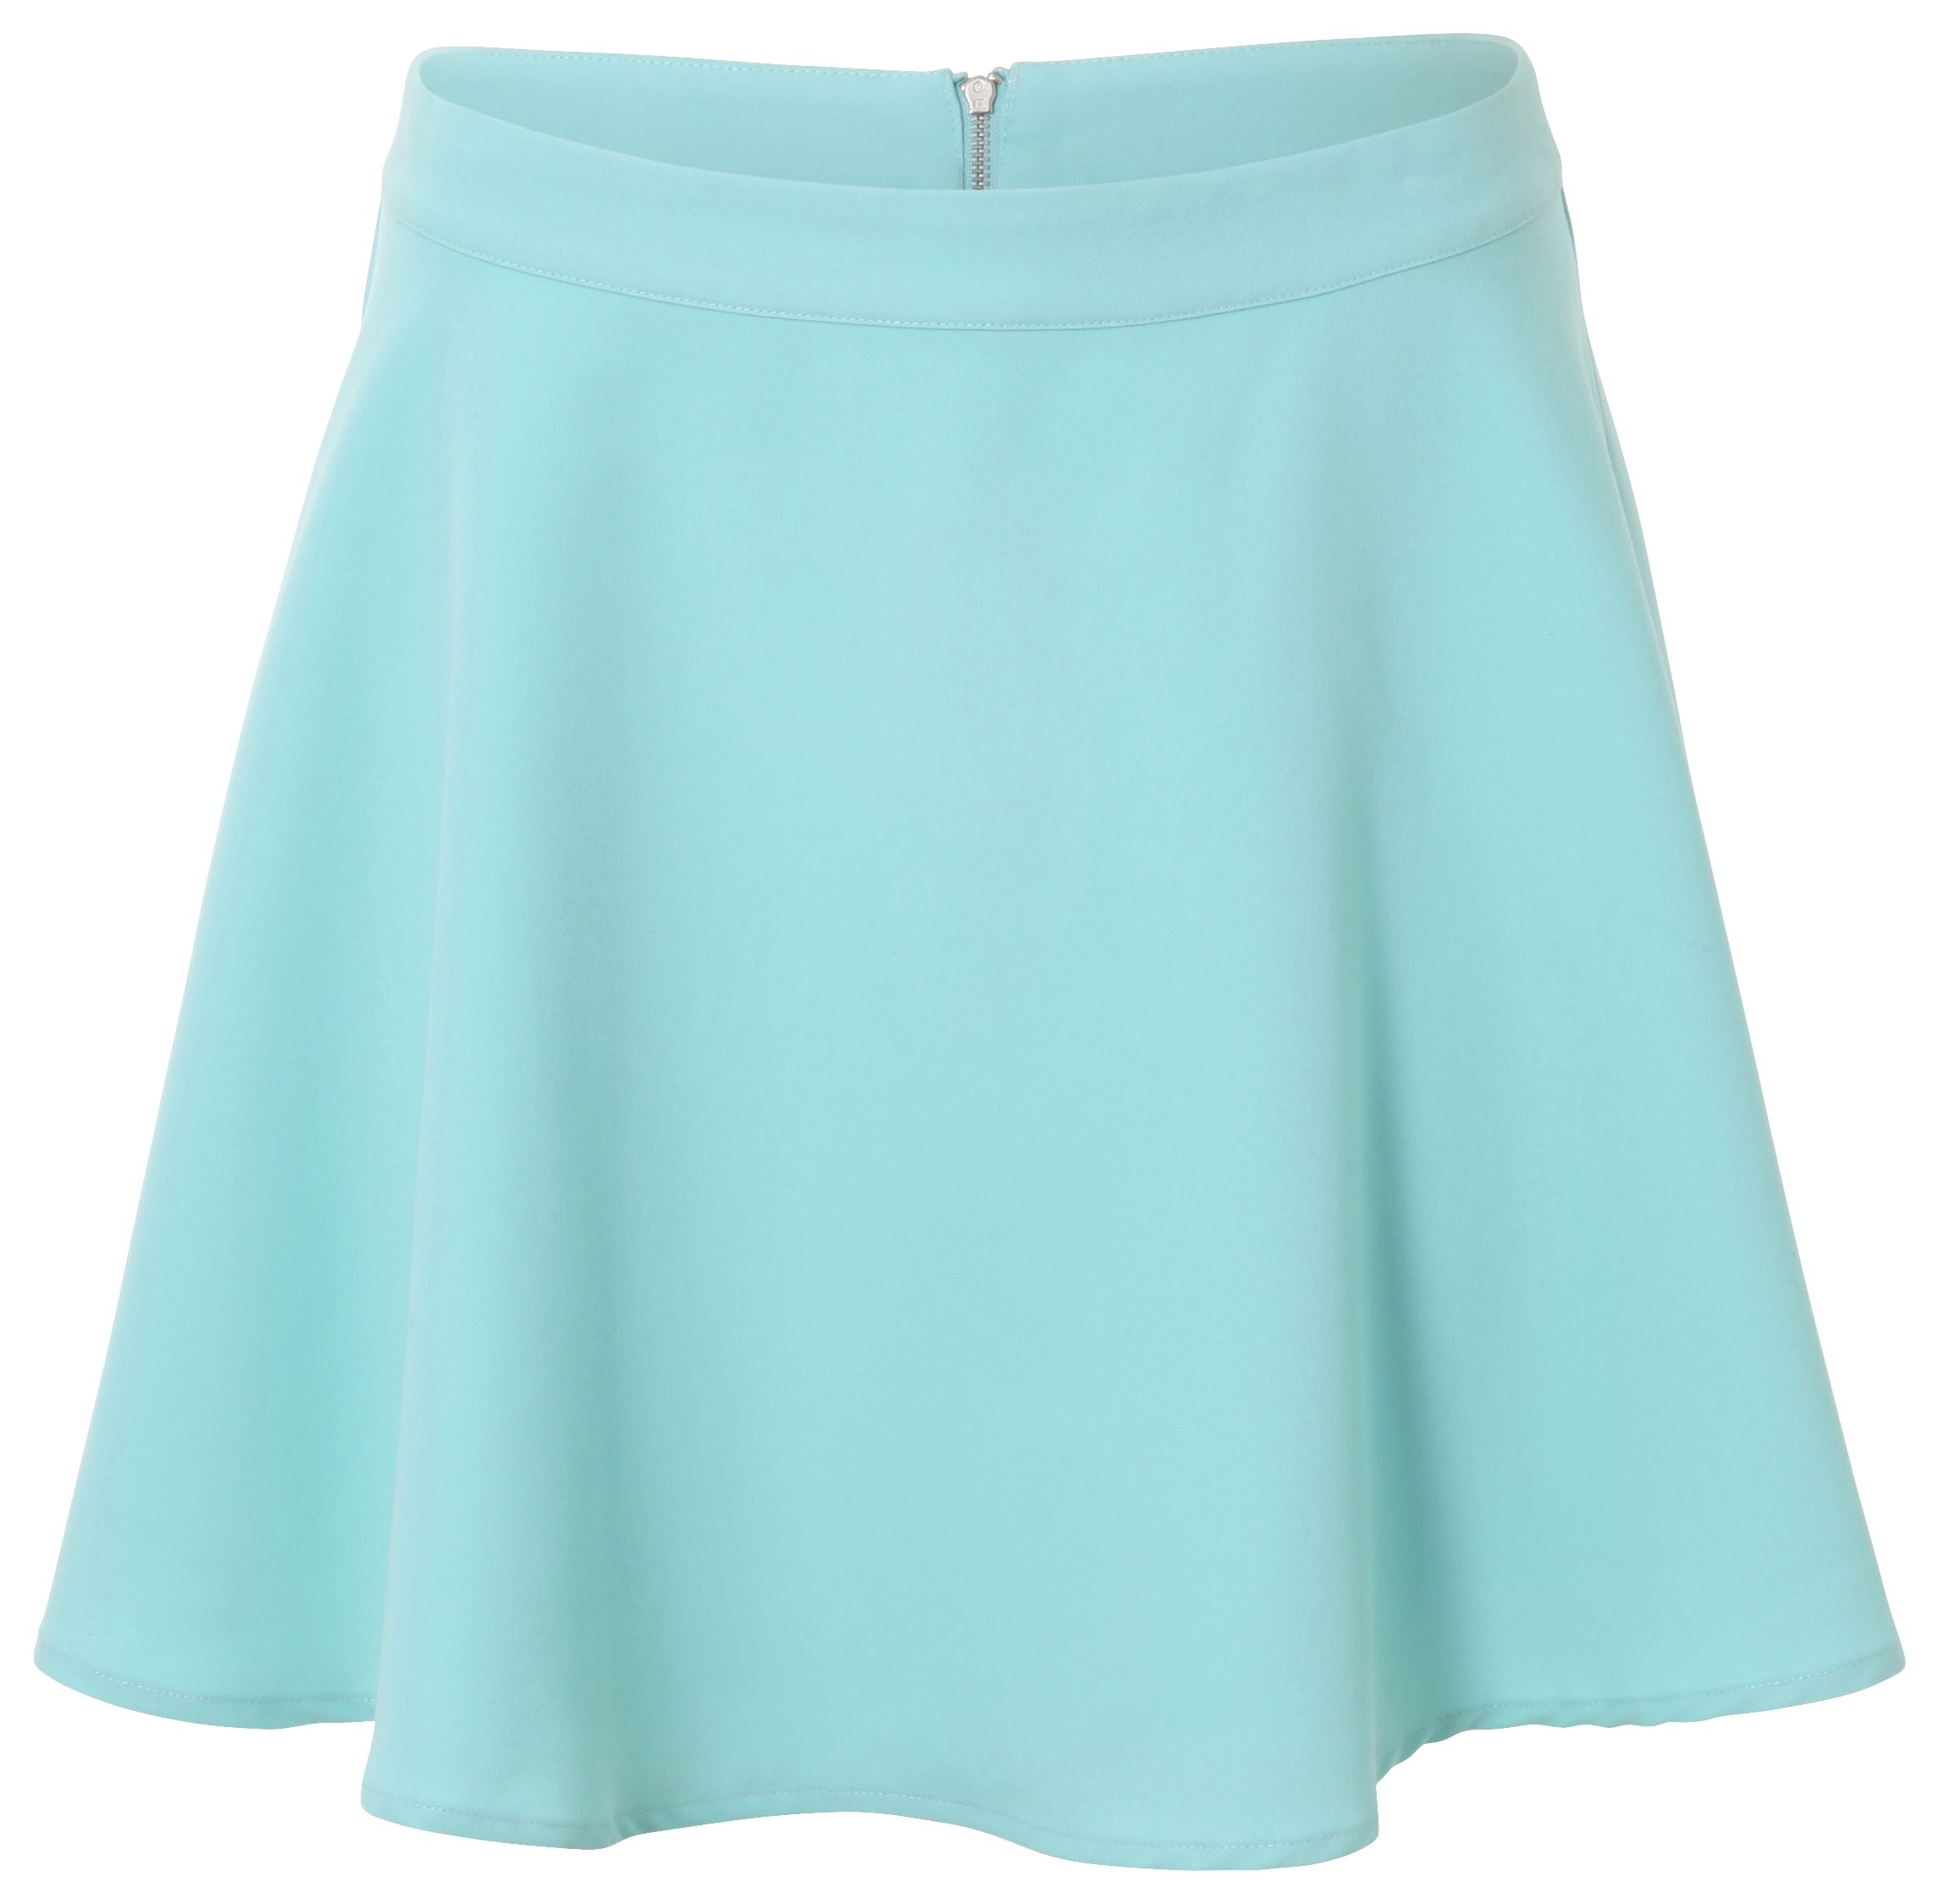 Paw/Pema Skirt in Turtledove #PrettyinPastels #SummerFashion #mbyM #DanishDesign